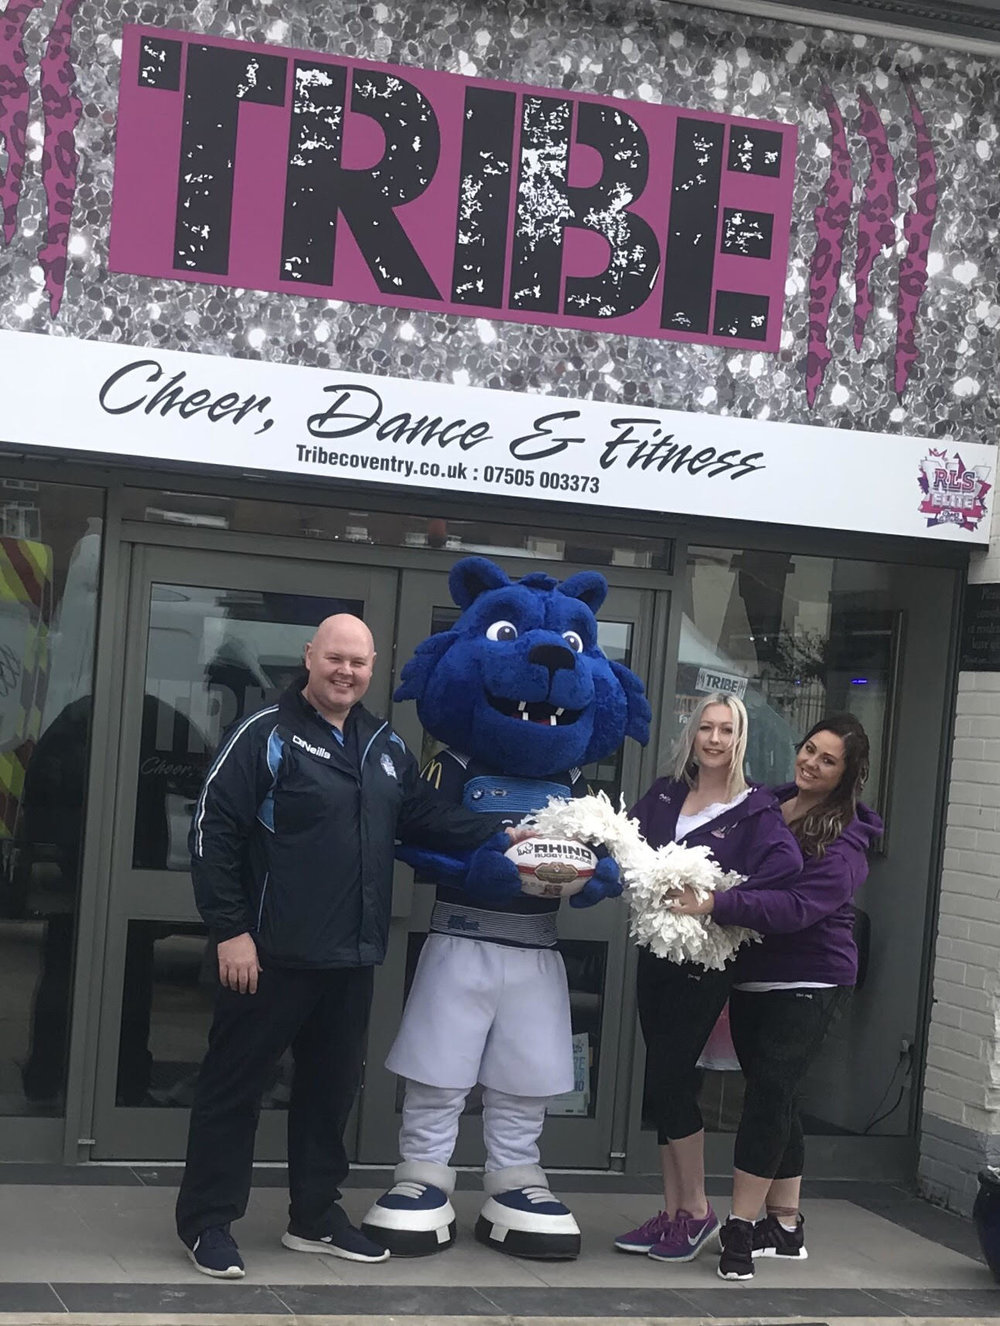 Alan Robinson and Big Blue meet Kim and Ellen from Tribe Coventry